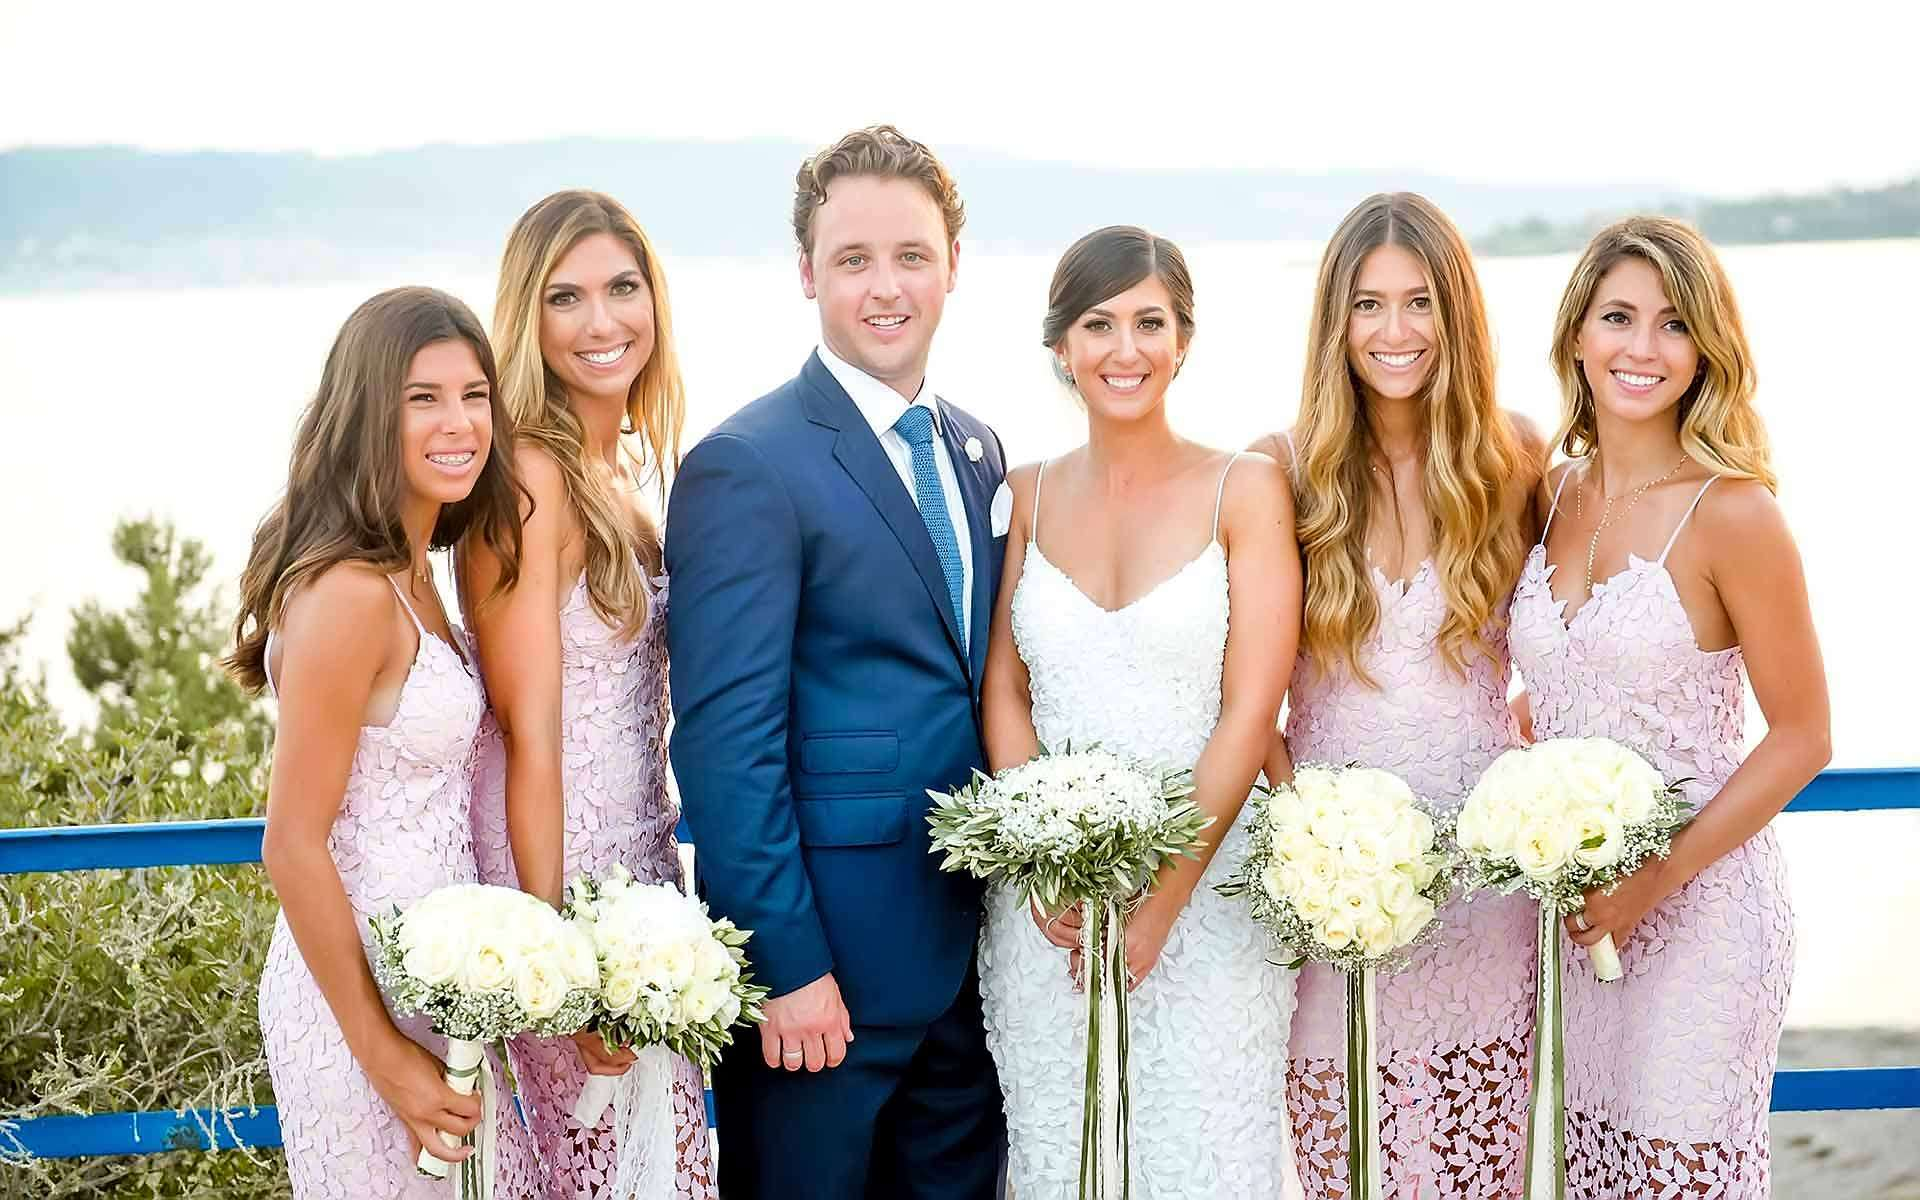 The-Couple-With-Their-Bridesmaid-Holding-Their-Wedding-Bouquets-With-White-Roses-With-Olive-Leaves-With-Olive-Leaves